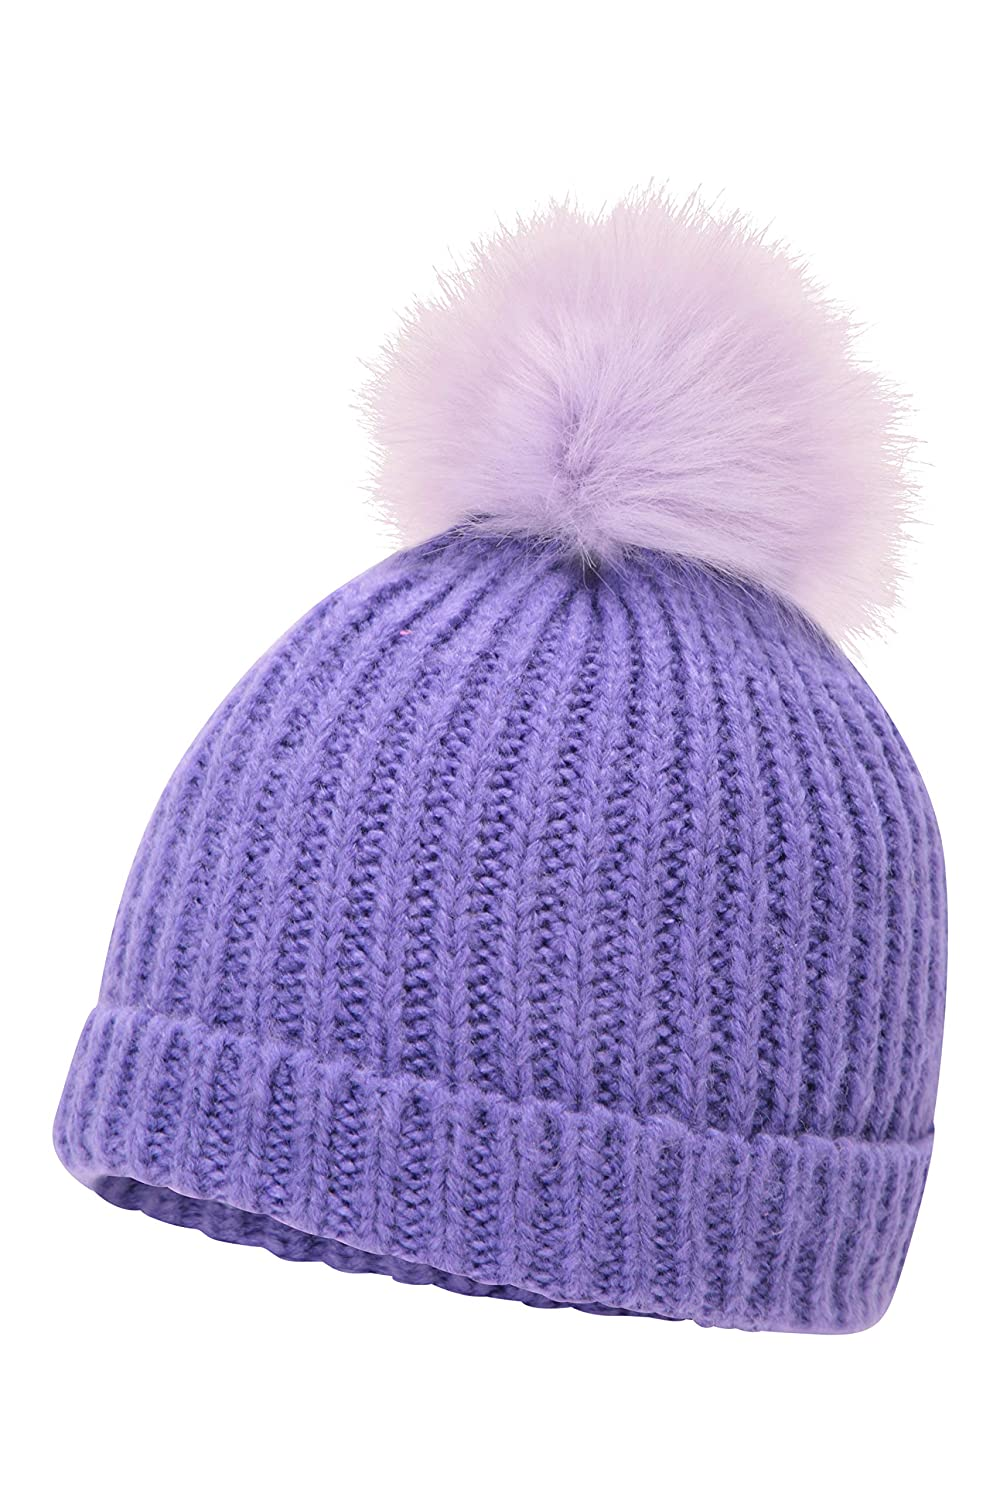 Pom Pom Warm Winter Hat Mountain Warehouse Fluff Bomb Kids Beanie